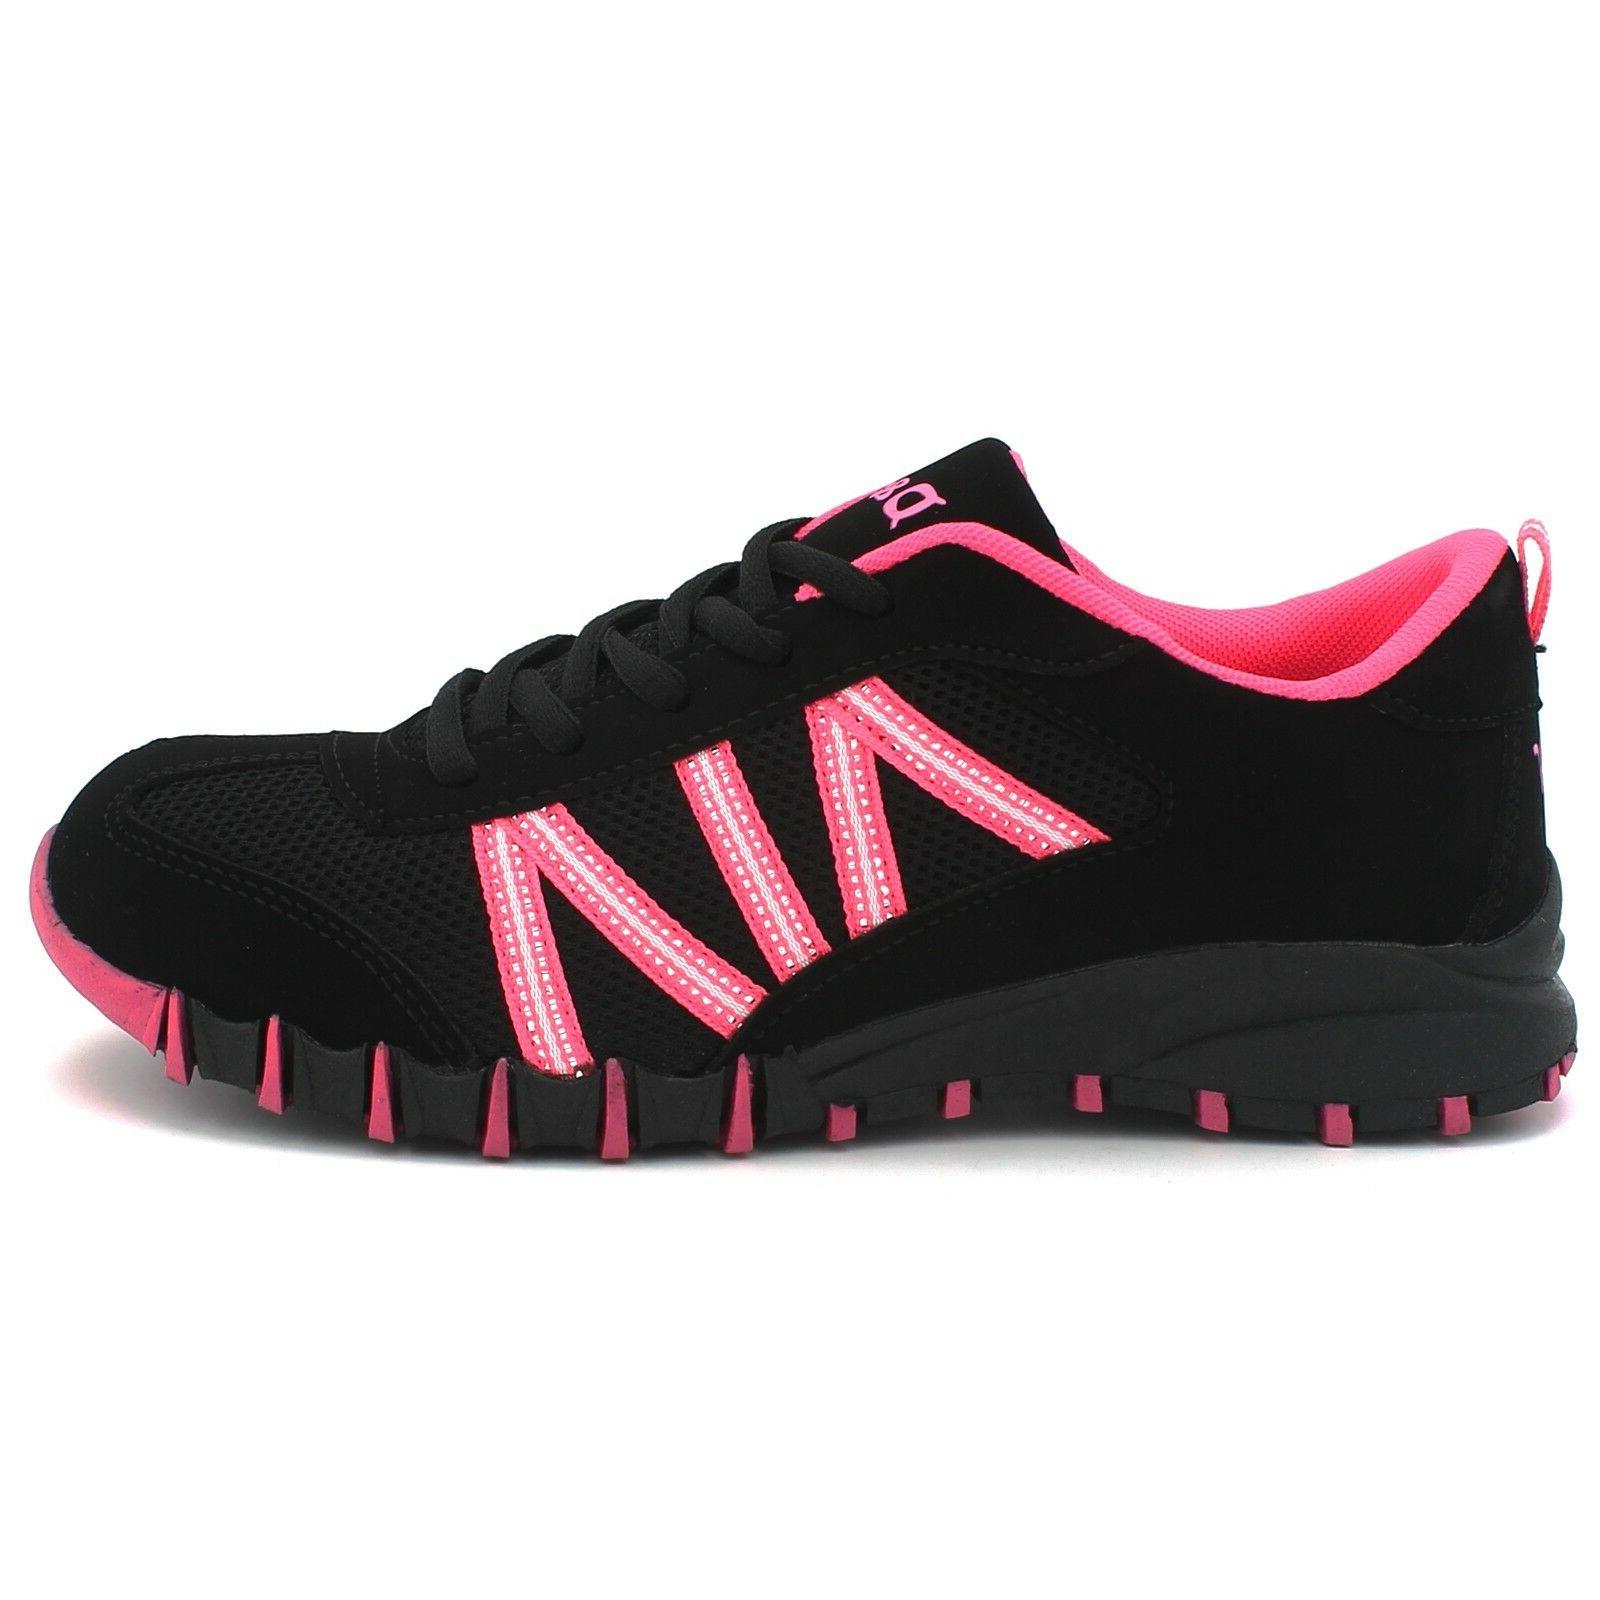 Women's Casual Tennis Walking Lace-Up Suede